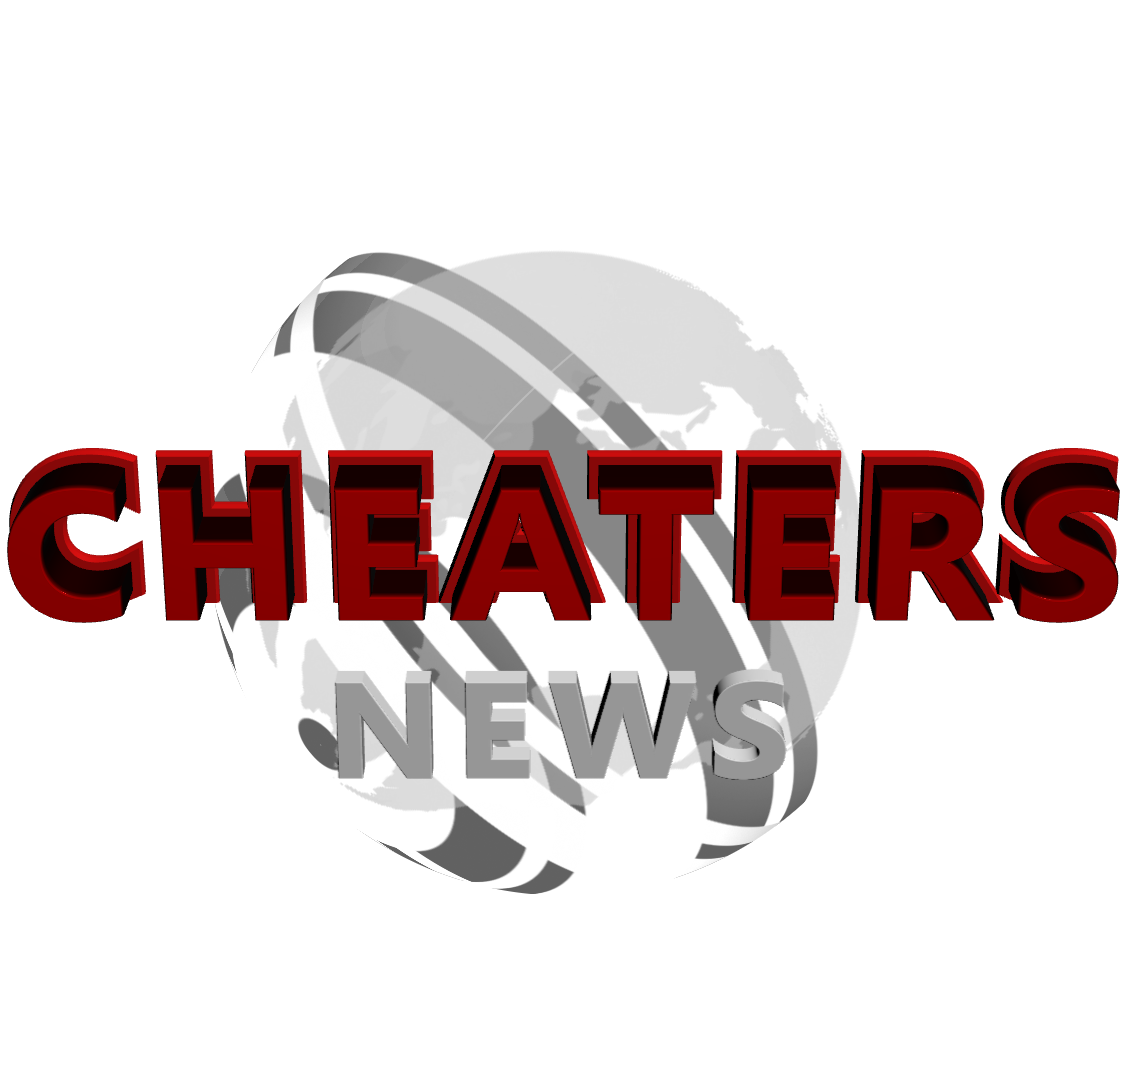 Cheaters News